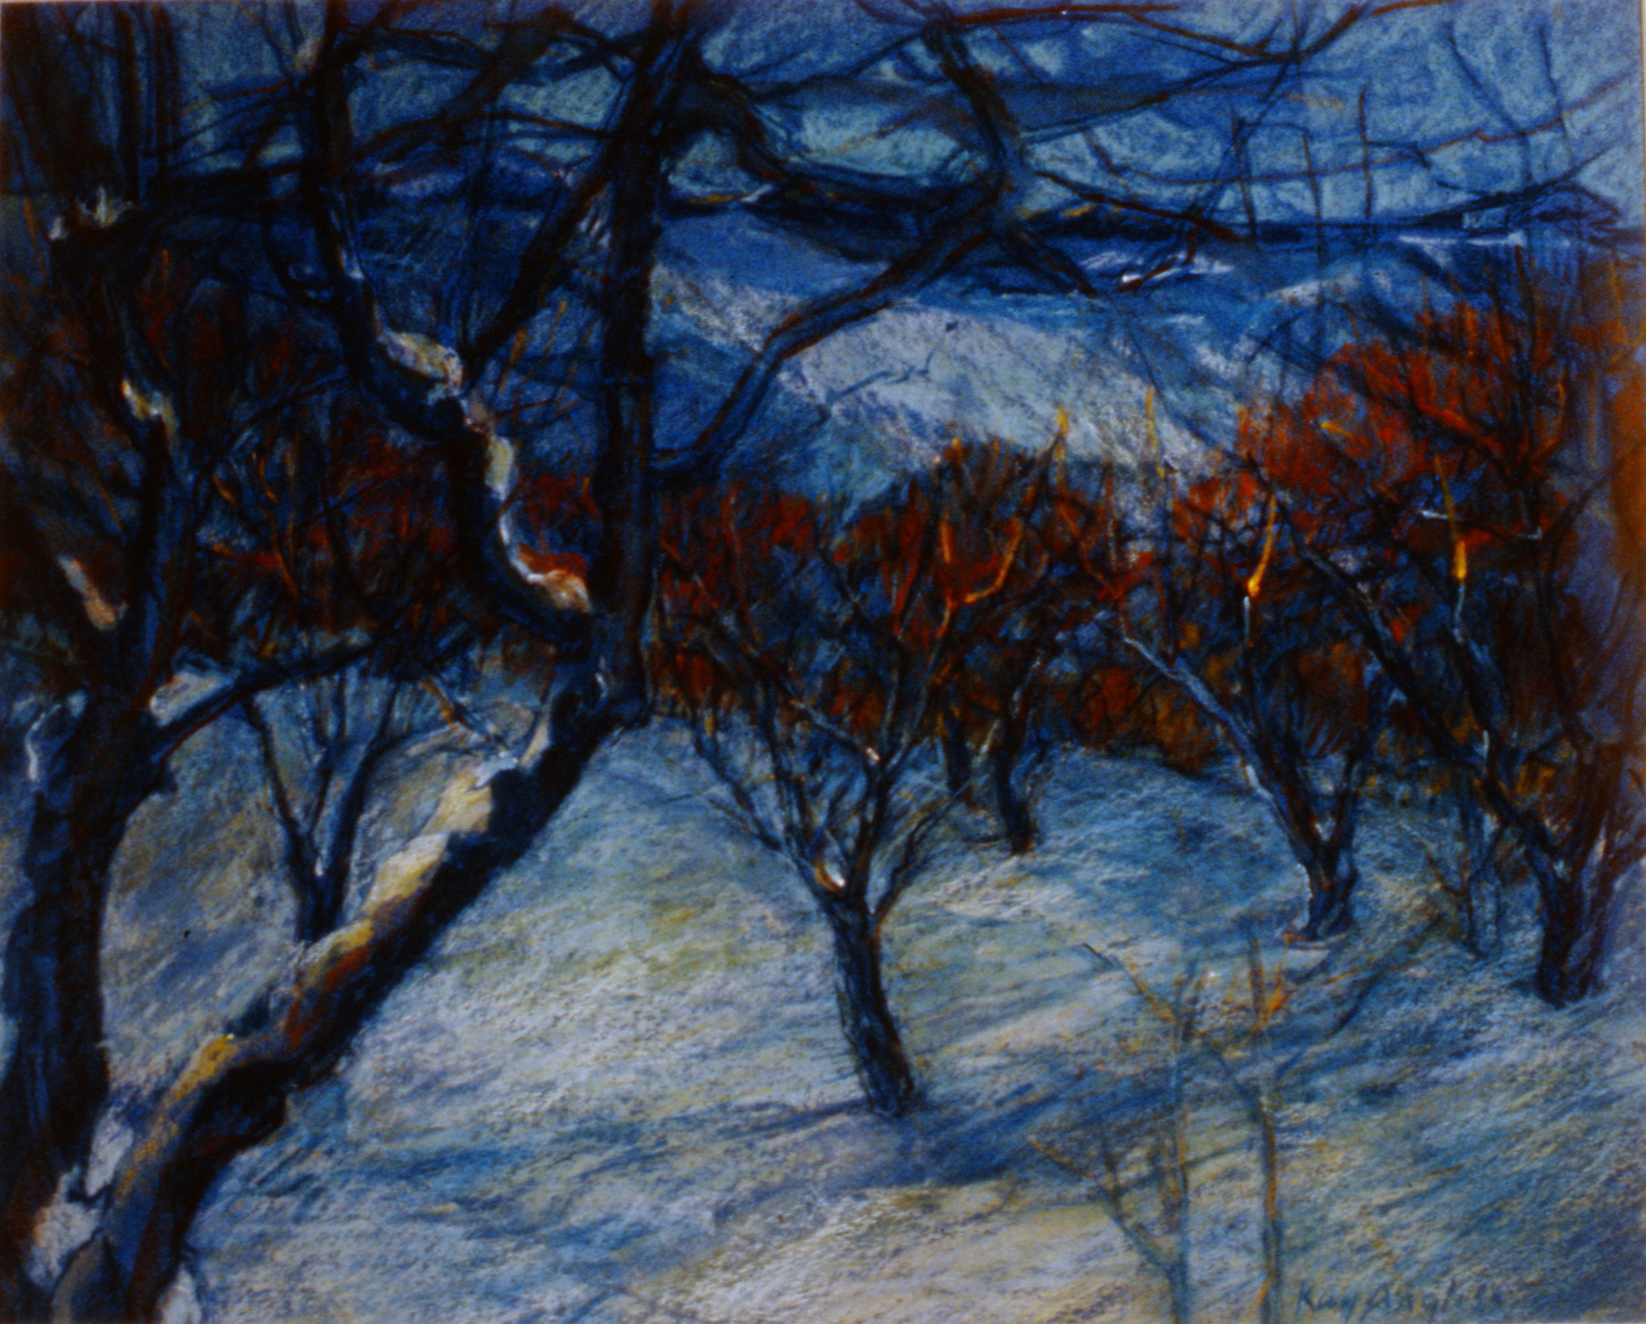 March Snow, Orchard Series #15 , 1991-93, Kay Angliss, oil pastel over silkscreen, 41 1/2 x 52 cm, 1994.08.02